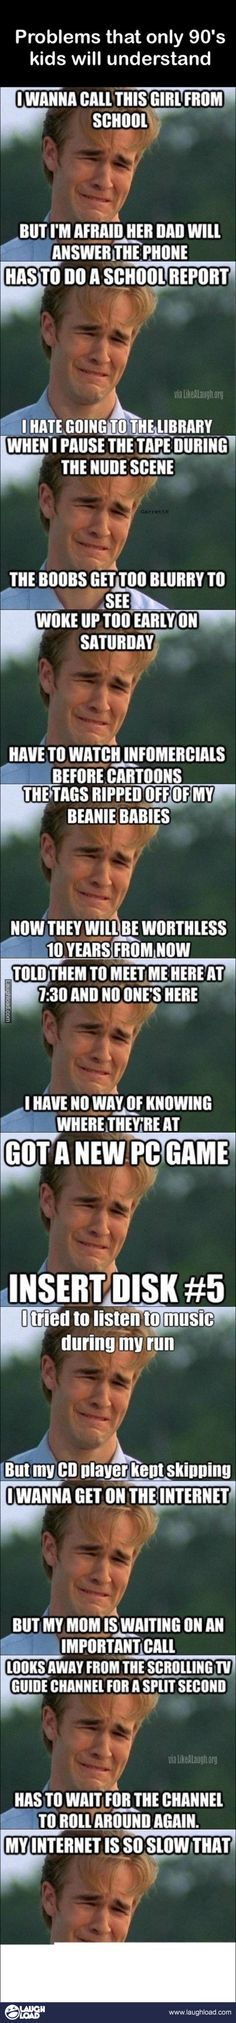 90's problems! You know them!